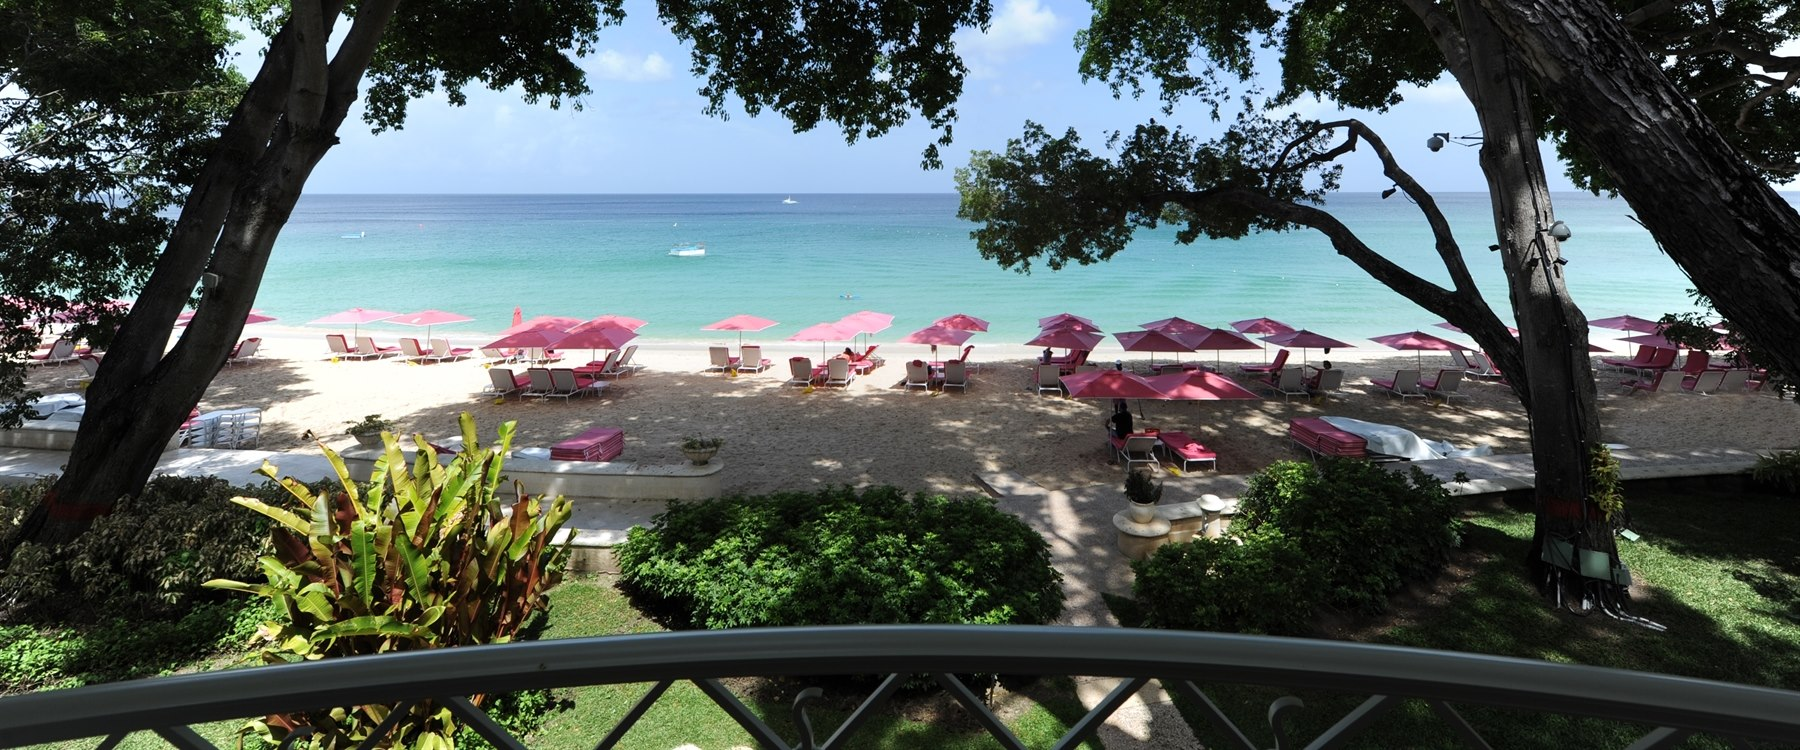 Beach from Balcony at Sandy Lane, Barbados